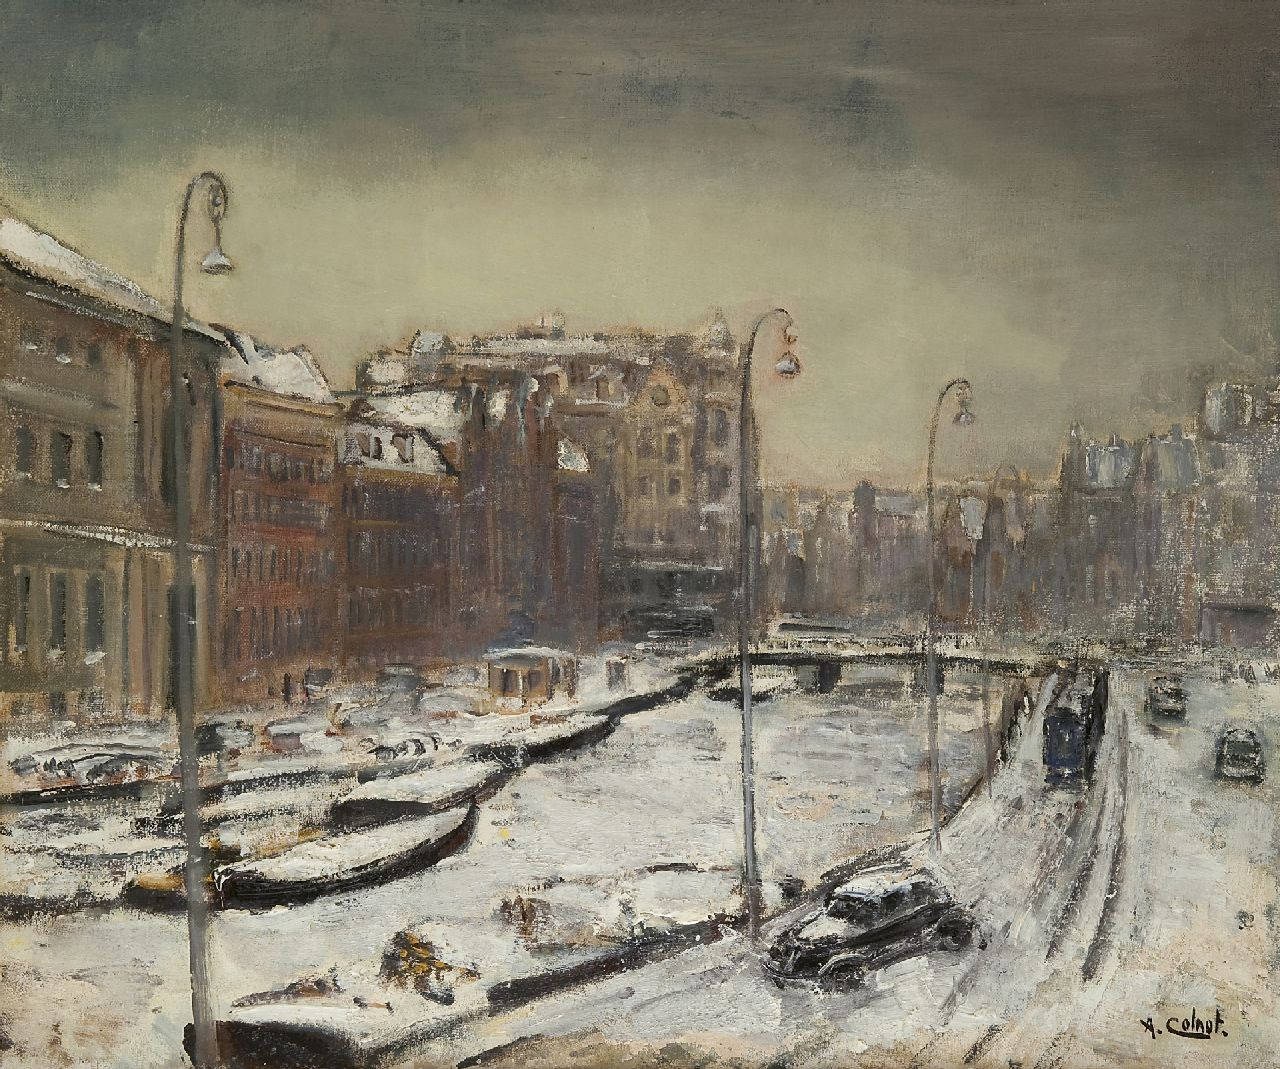 Colnot A.J.G.  | 'Arnout' Jacobus Gustaaf Colnot, The Rokin, Amsterdam, in winter, oil on canvas 55.1 x 65.0 cm, signed l.r.